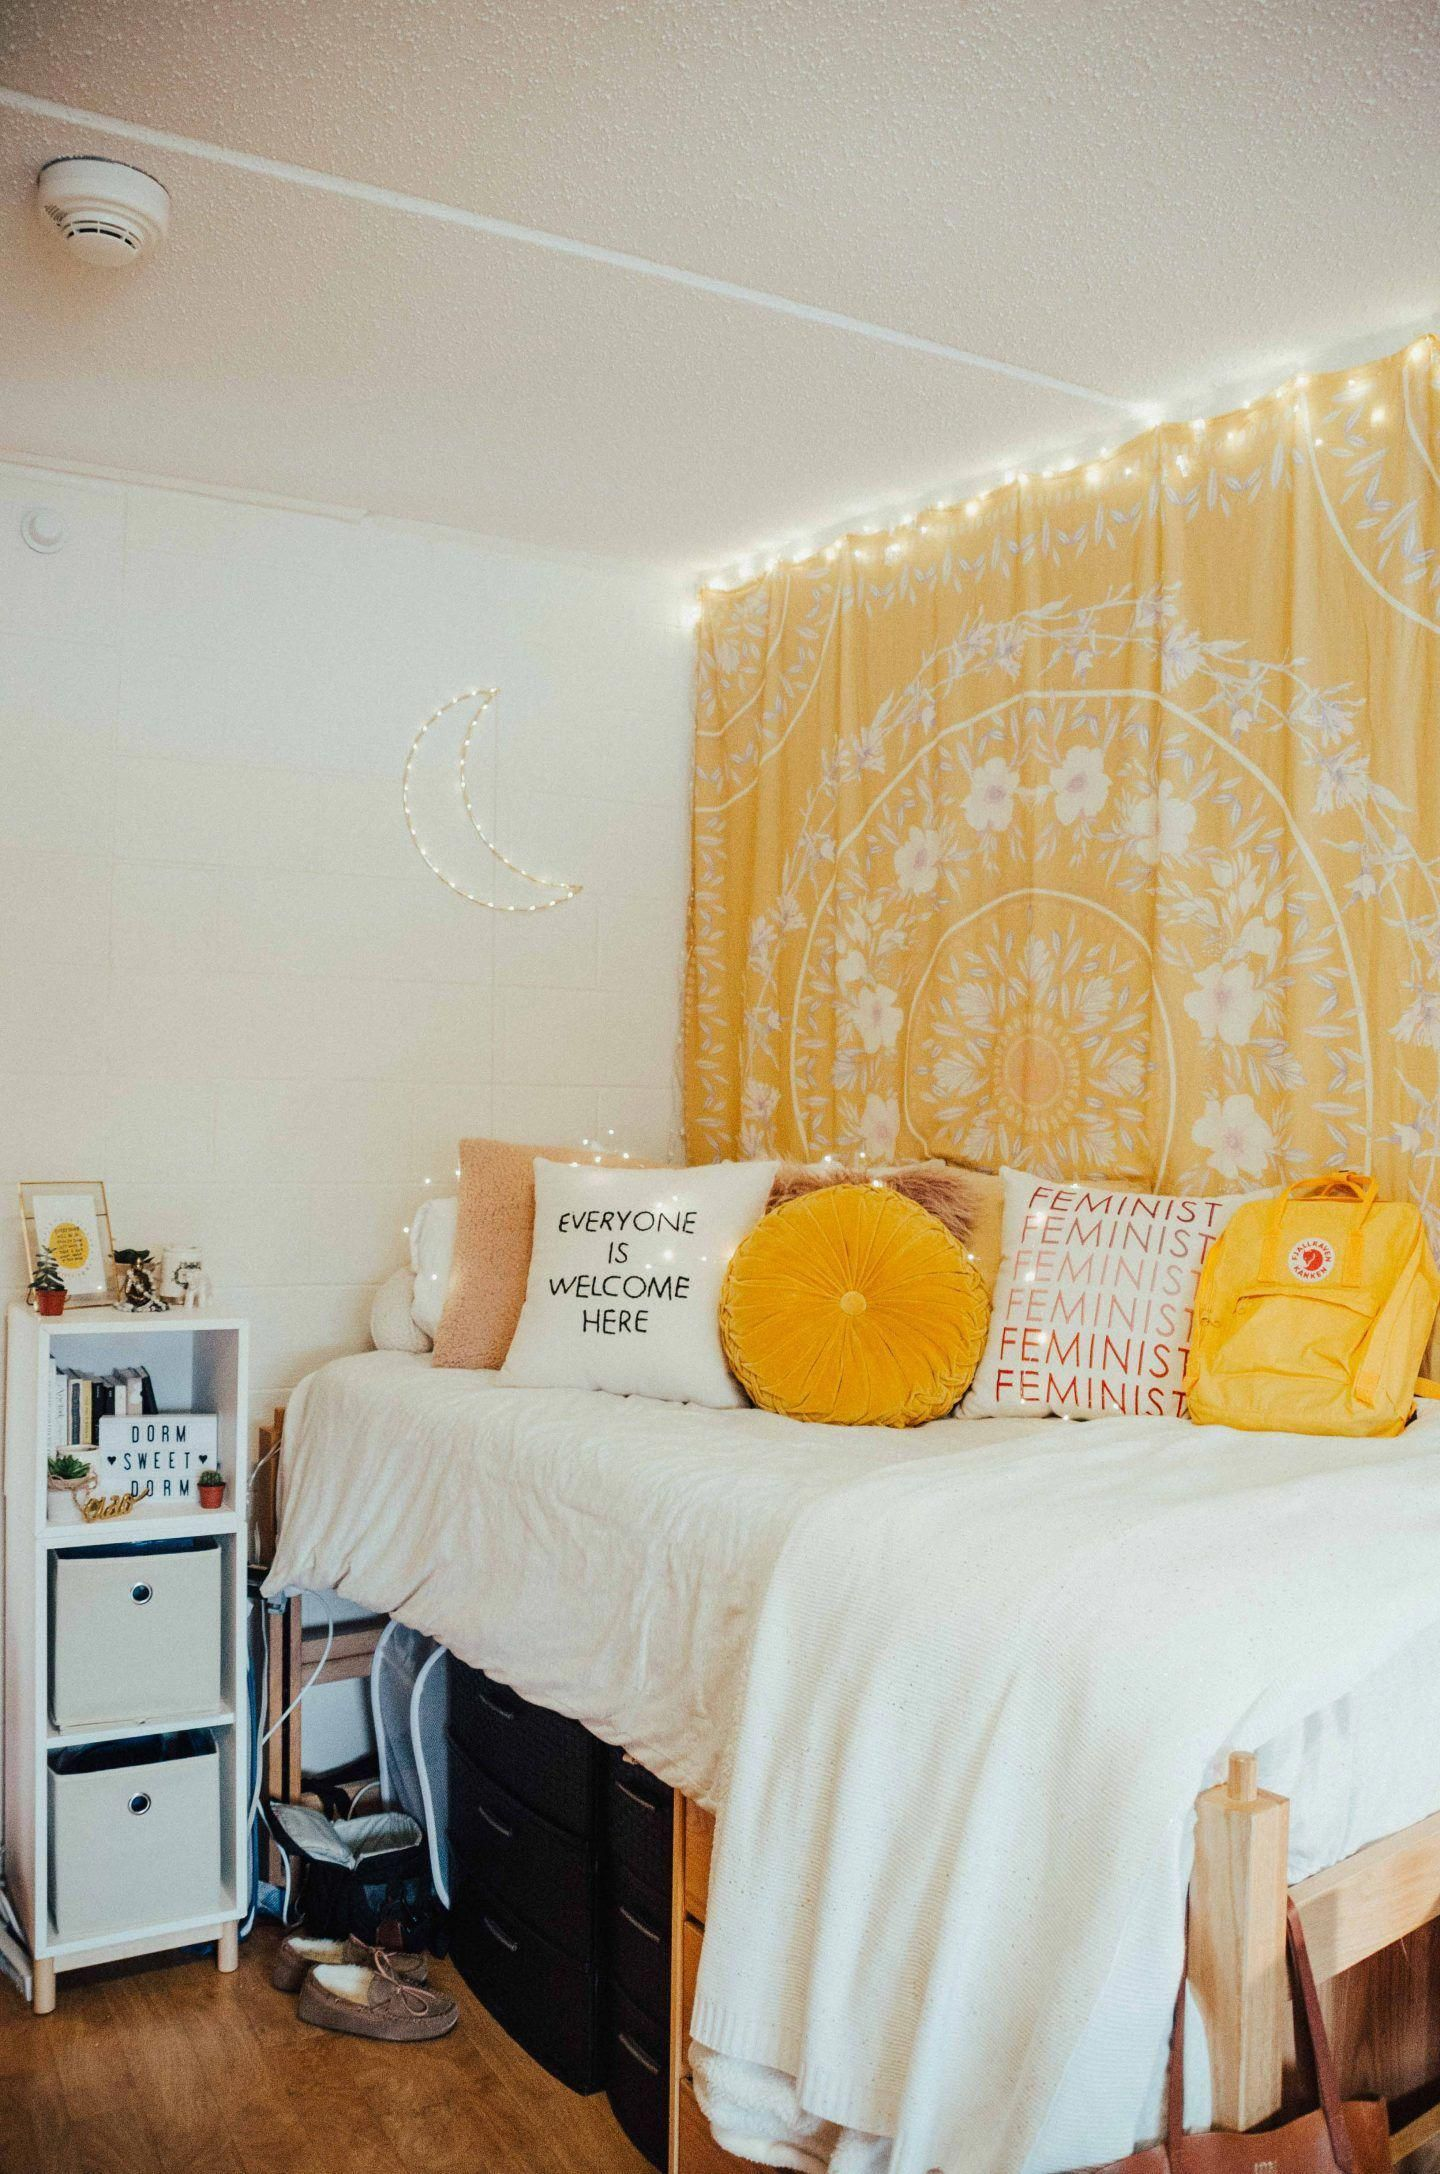 Pin Insta Kaelimariee Guest Bedroom Gray White And Yellow Guest Bedroom Bedroomcolorideas Dorm Room Inspiration Dorm Room Designs Yellow Bedroom Decor